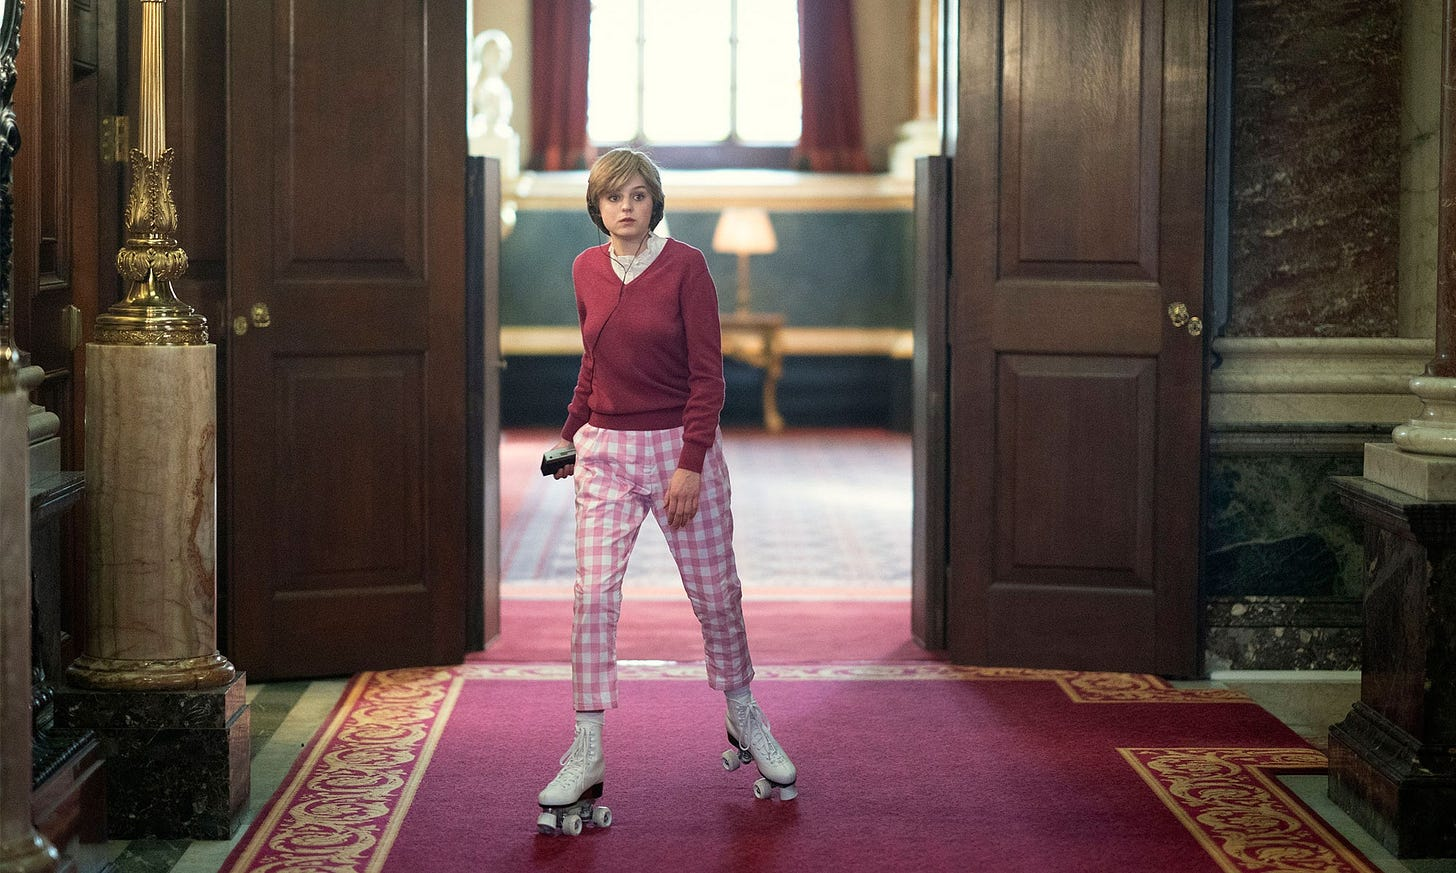 The Crown': Did Princess Diana Really Roller-Skate Through the Palace? |  Vanity Fair